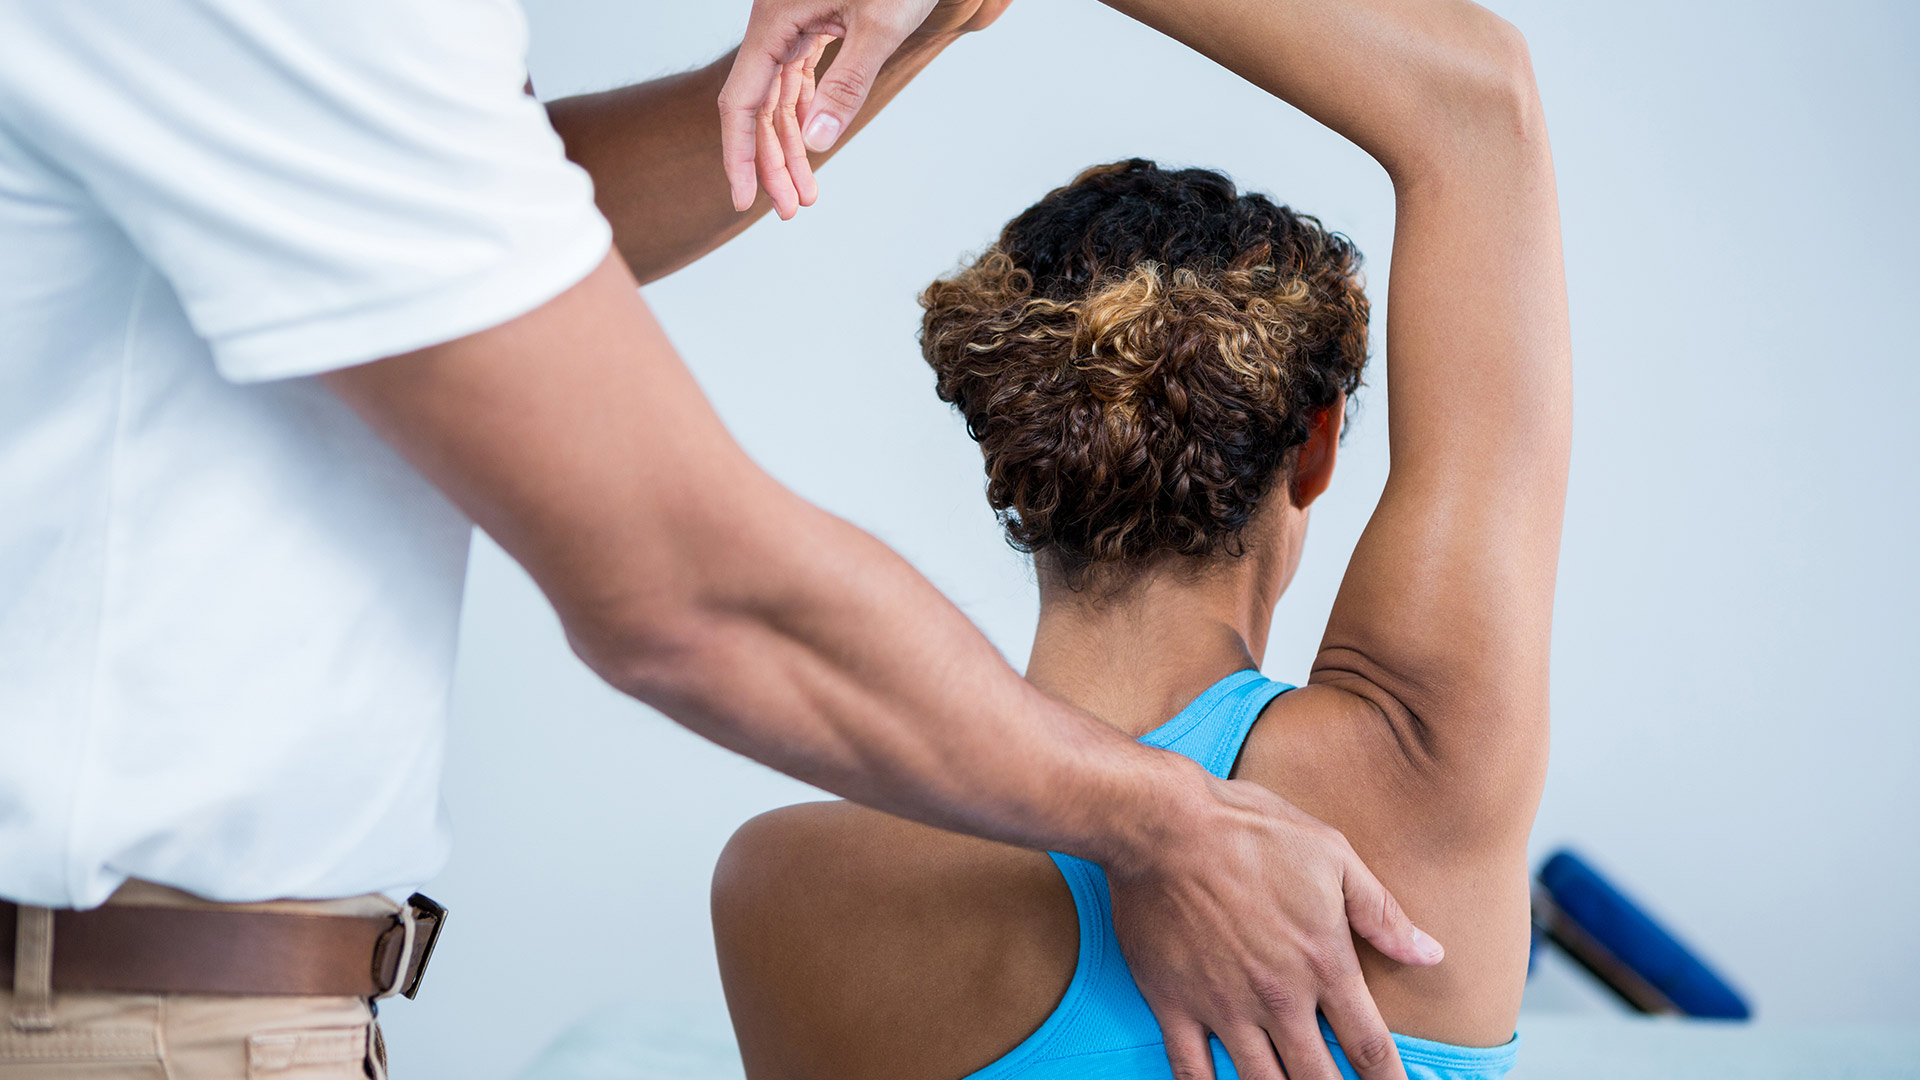 shoulder orthopedics boise